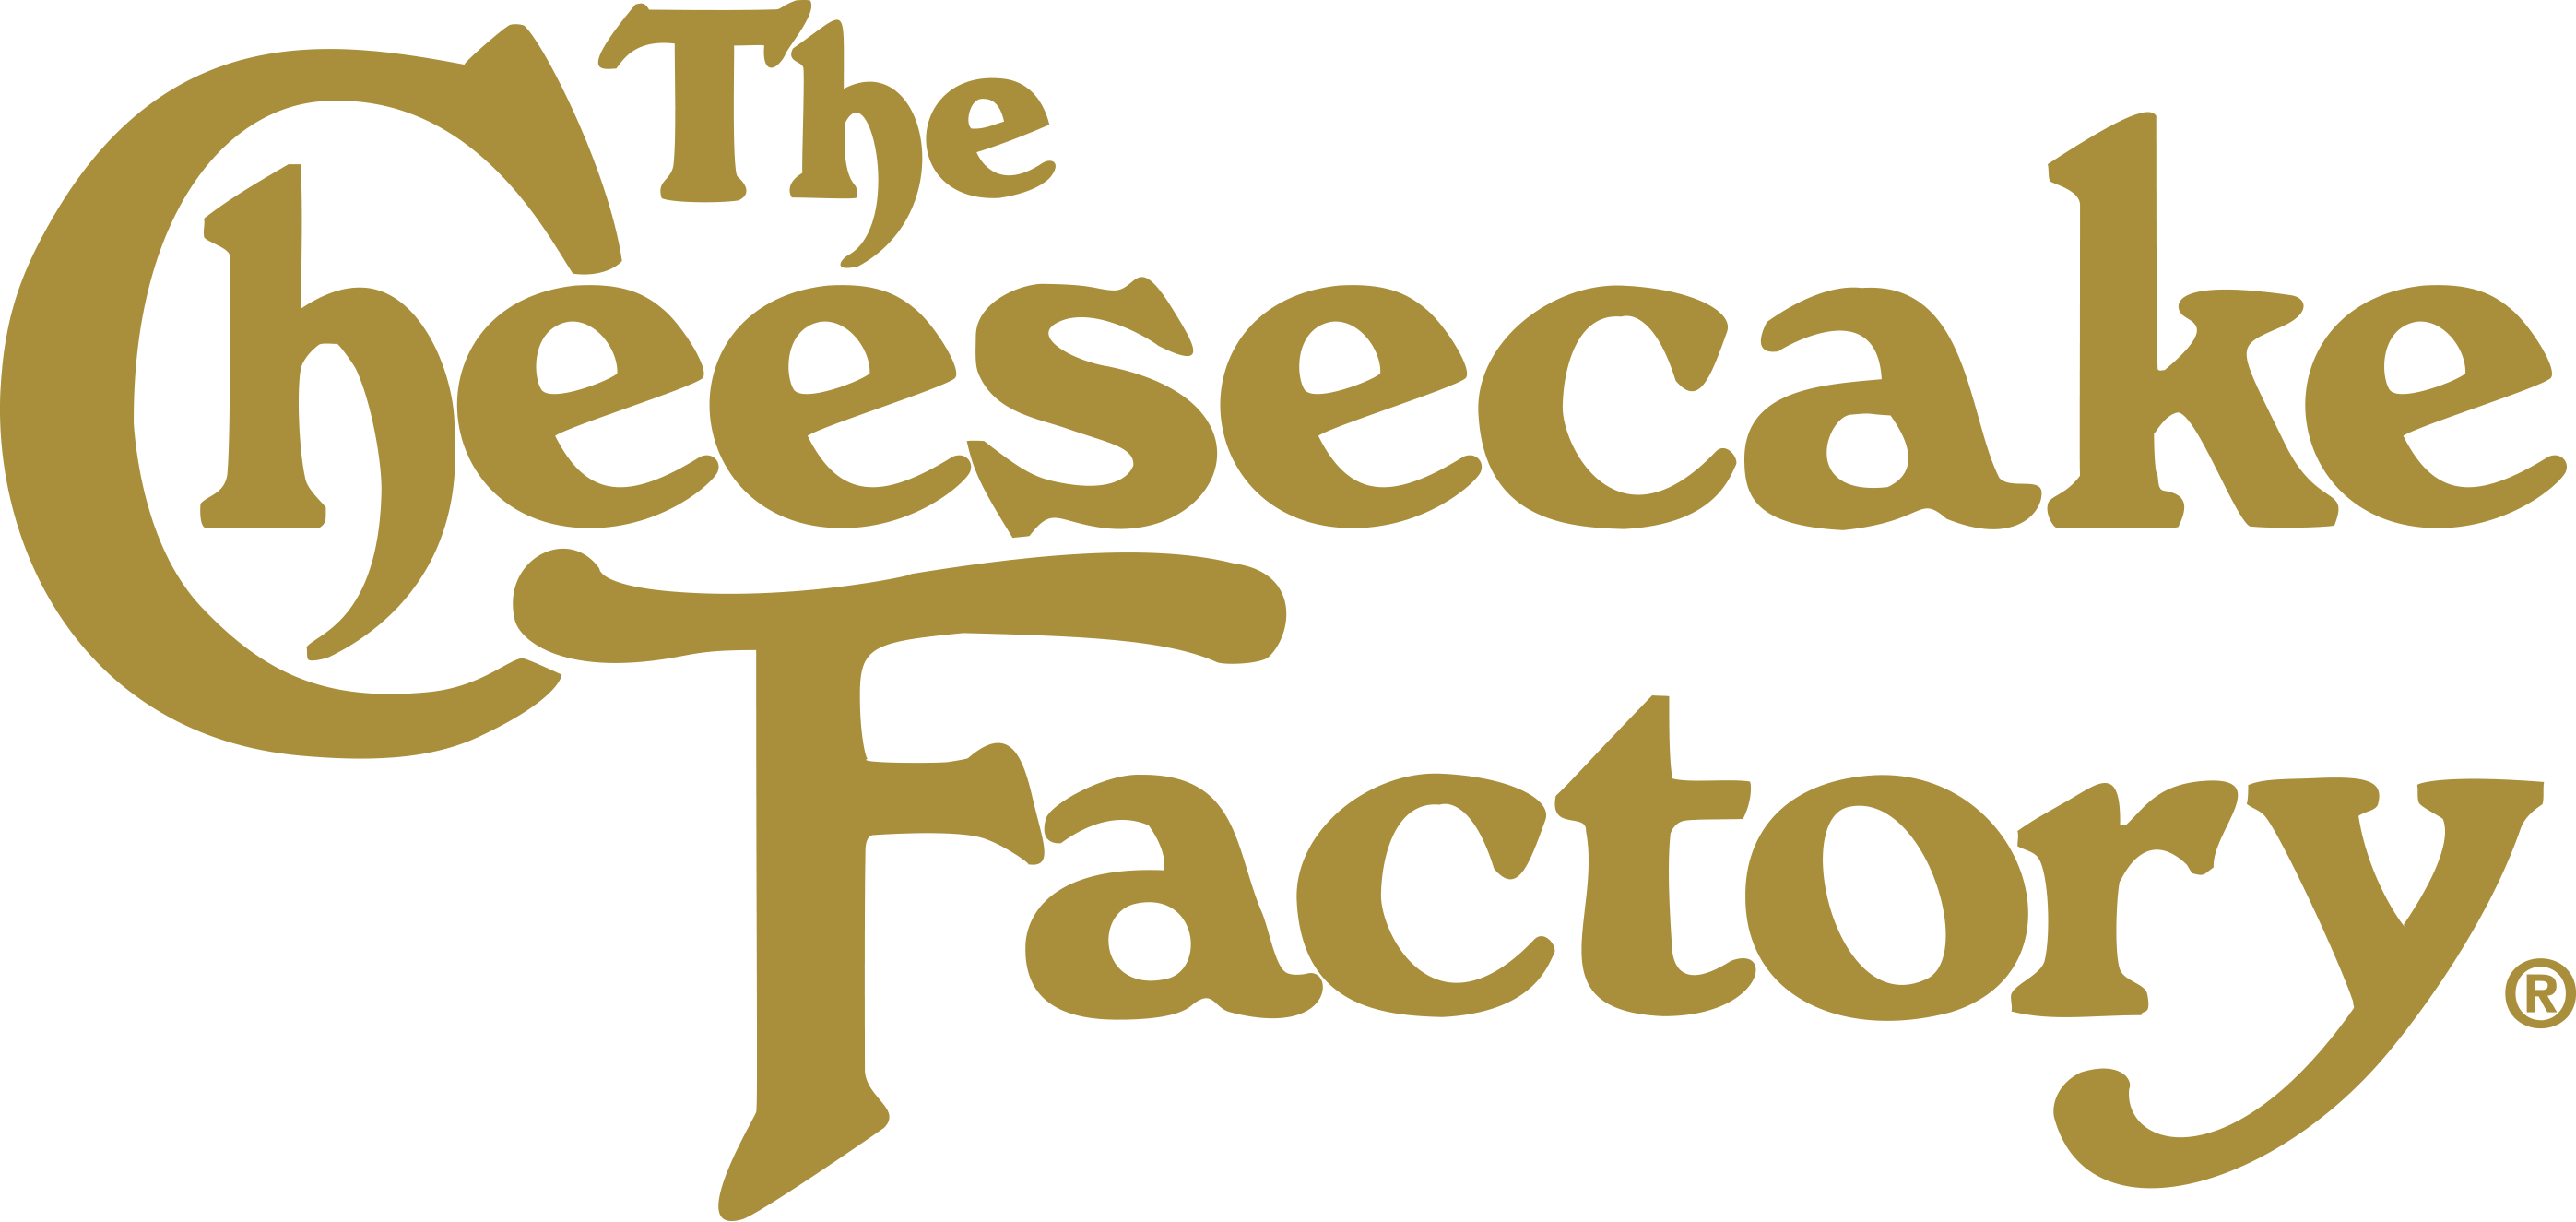 Cheesecake factory png. Popular delicacies from the